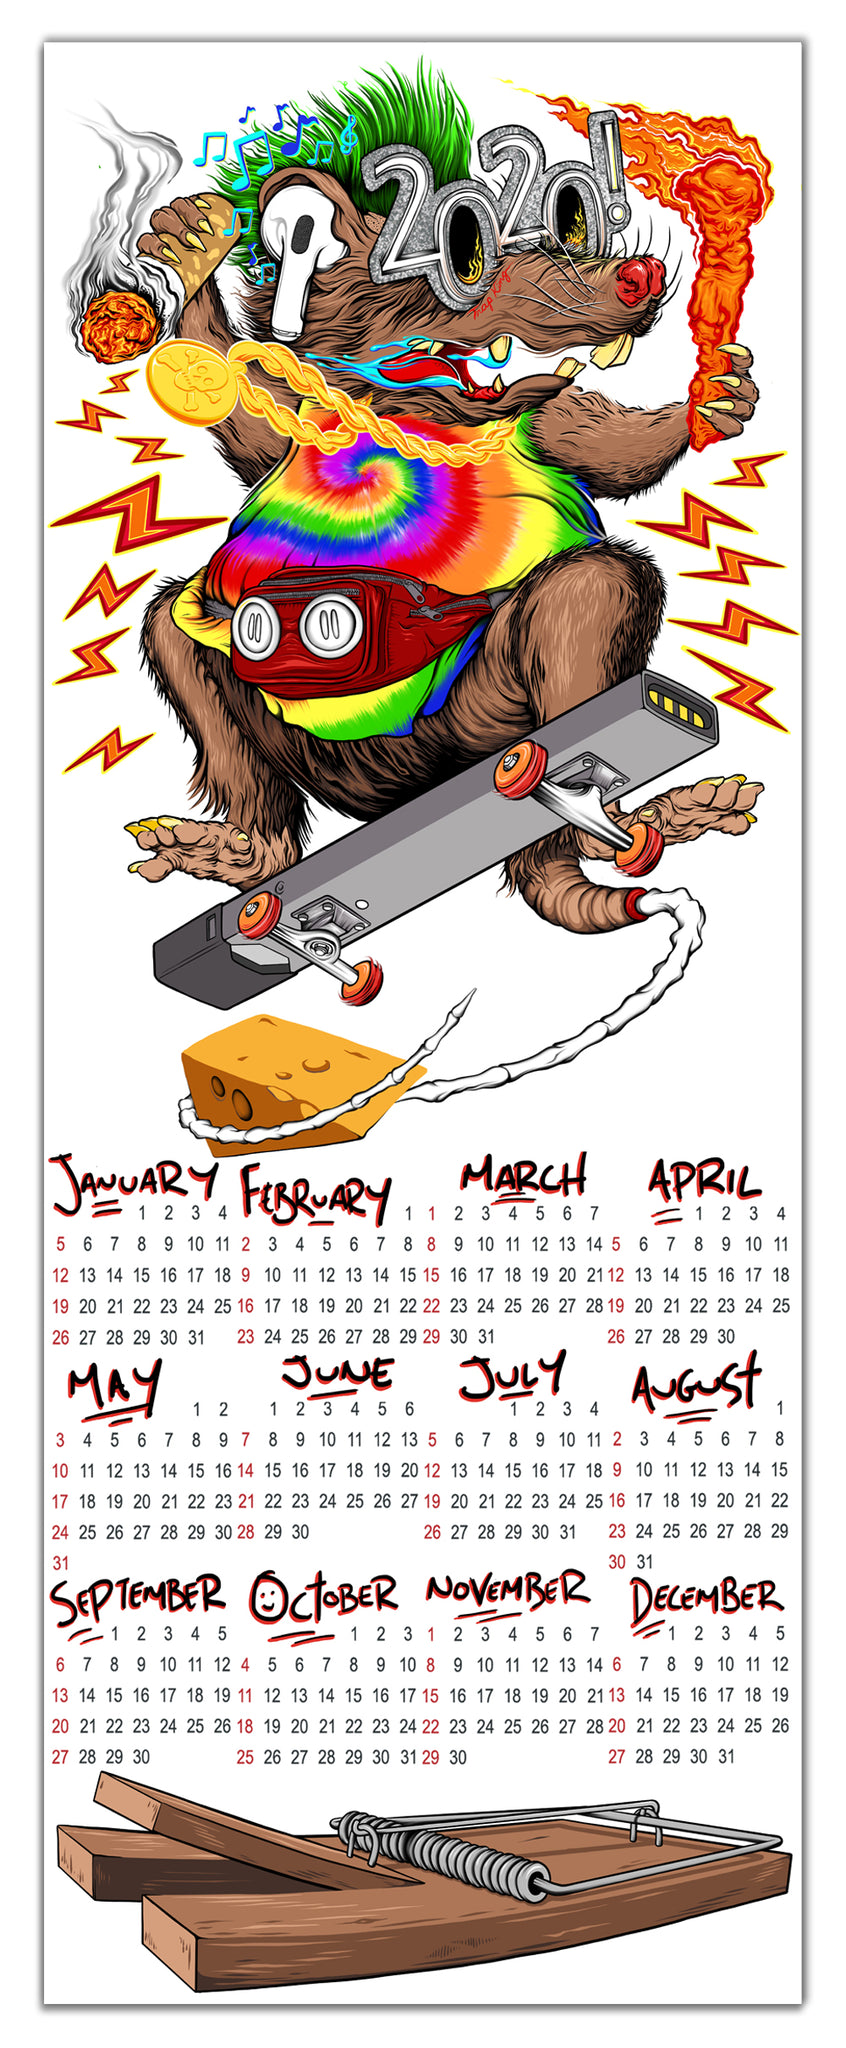 2020 Calendar - Year Of The Rat